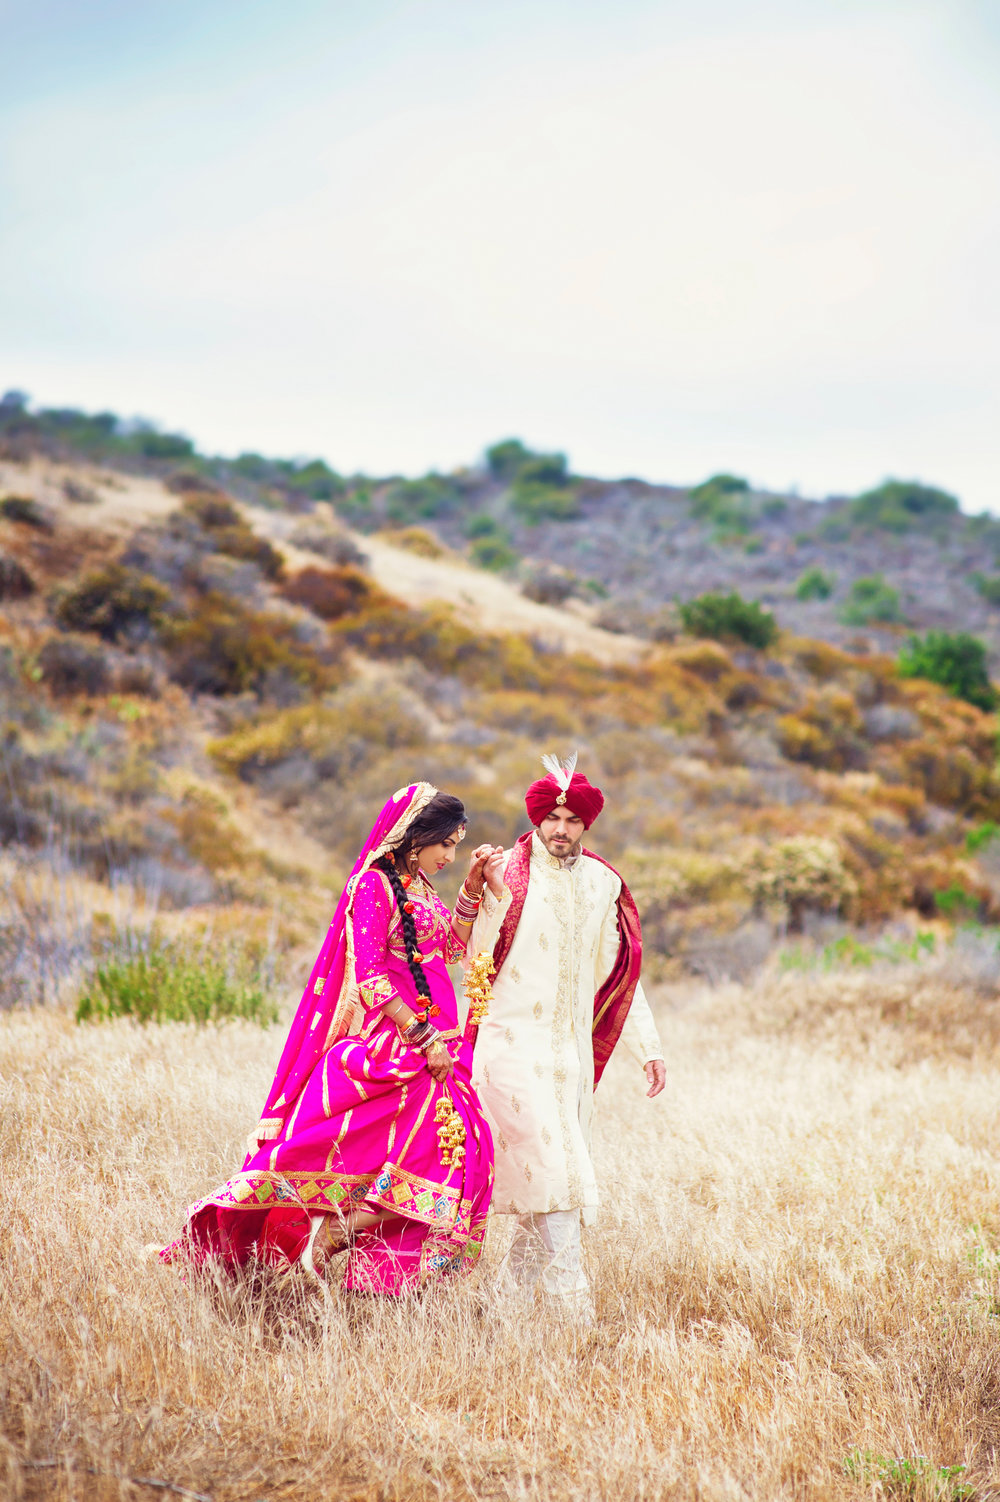 JKP_Indian_Weddings_0001.JPG